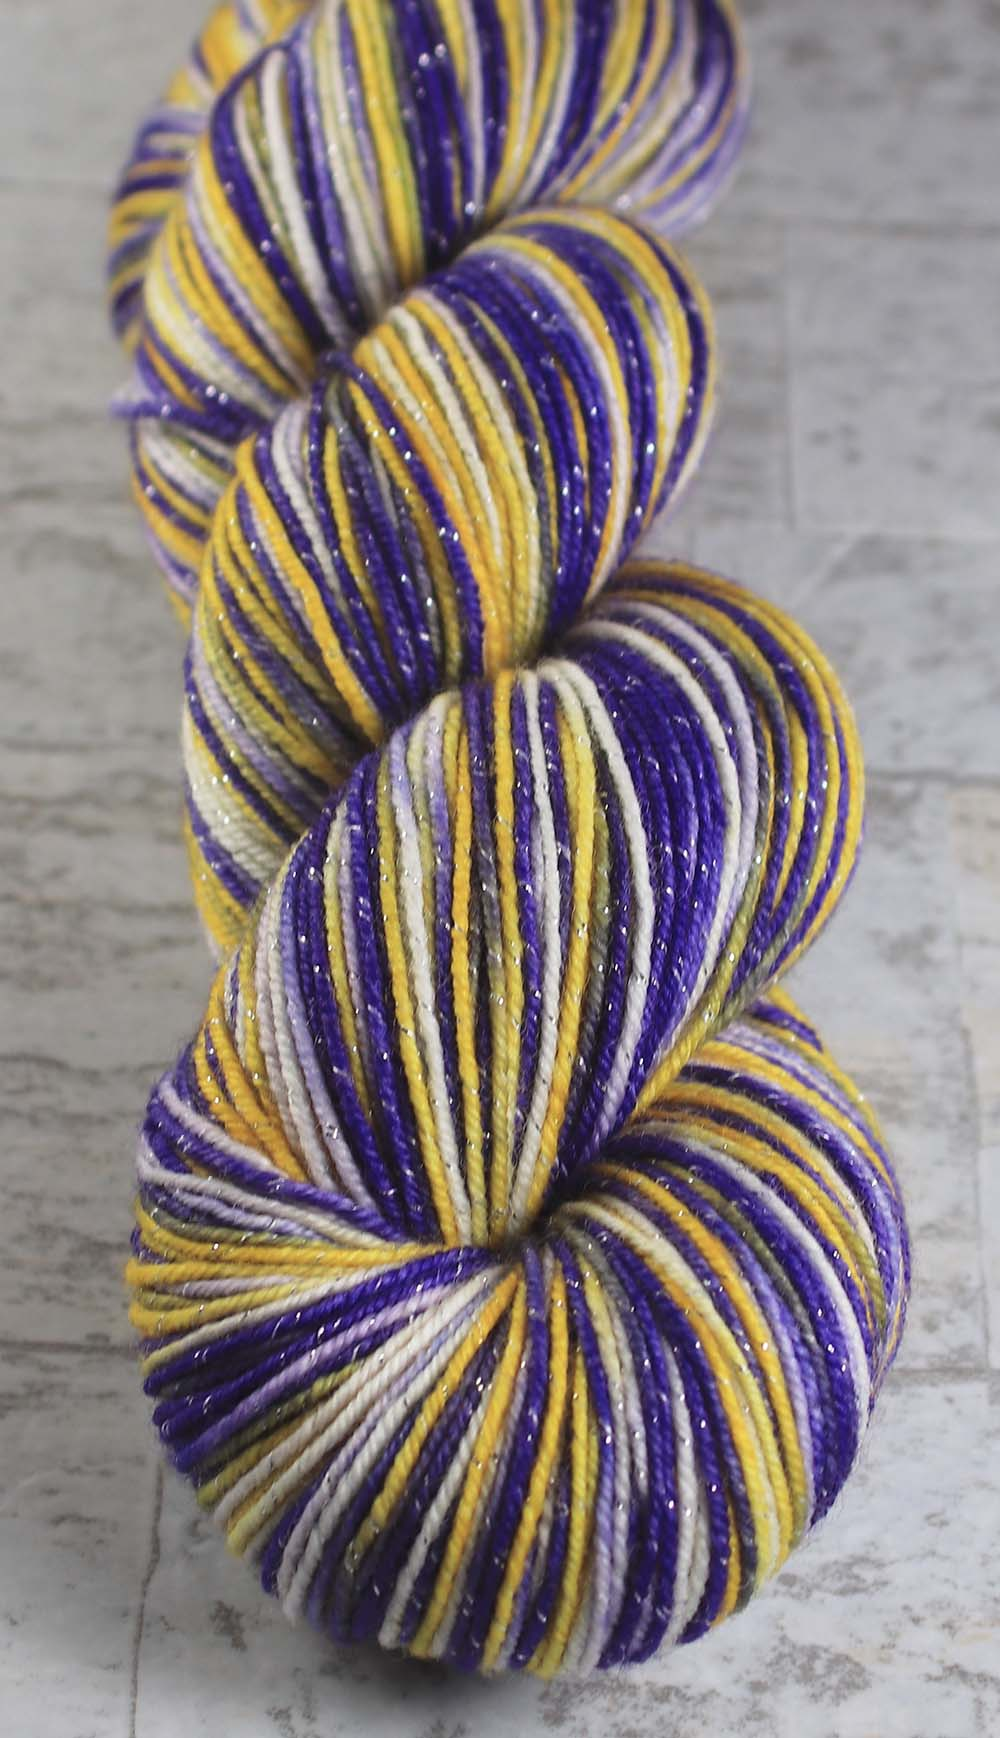 PURPLE - GOLD - WHITE: SW Merino-Lurex - Hand dyed Sparkle Variegated - sport team sock yarn - LOUISIANA, LOS ANGELES, MINNESOTA